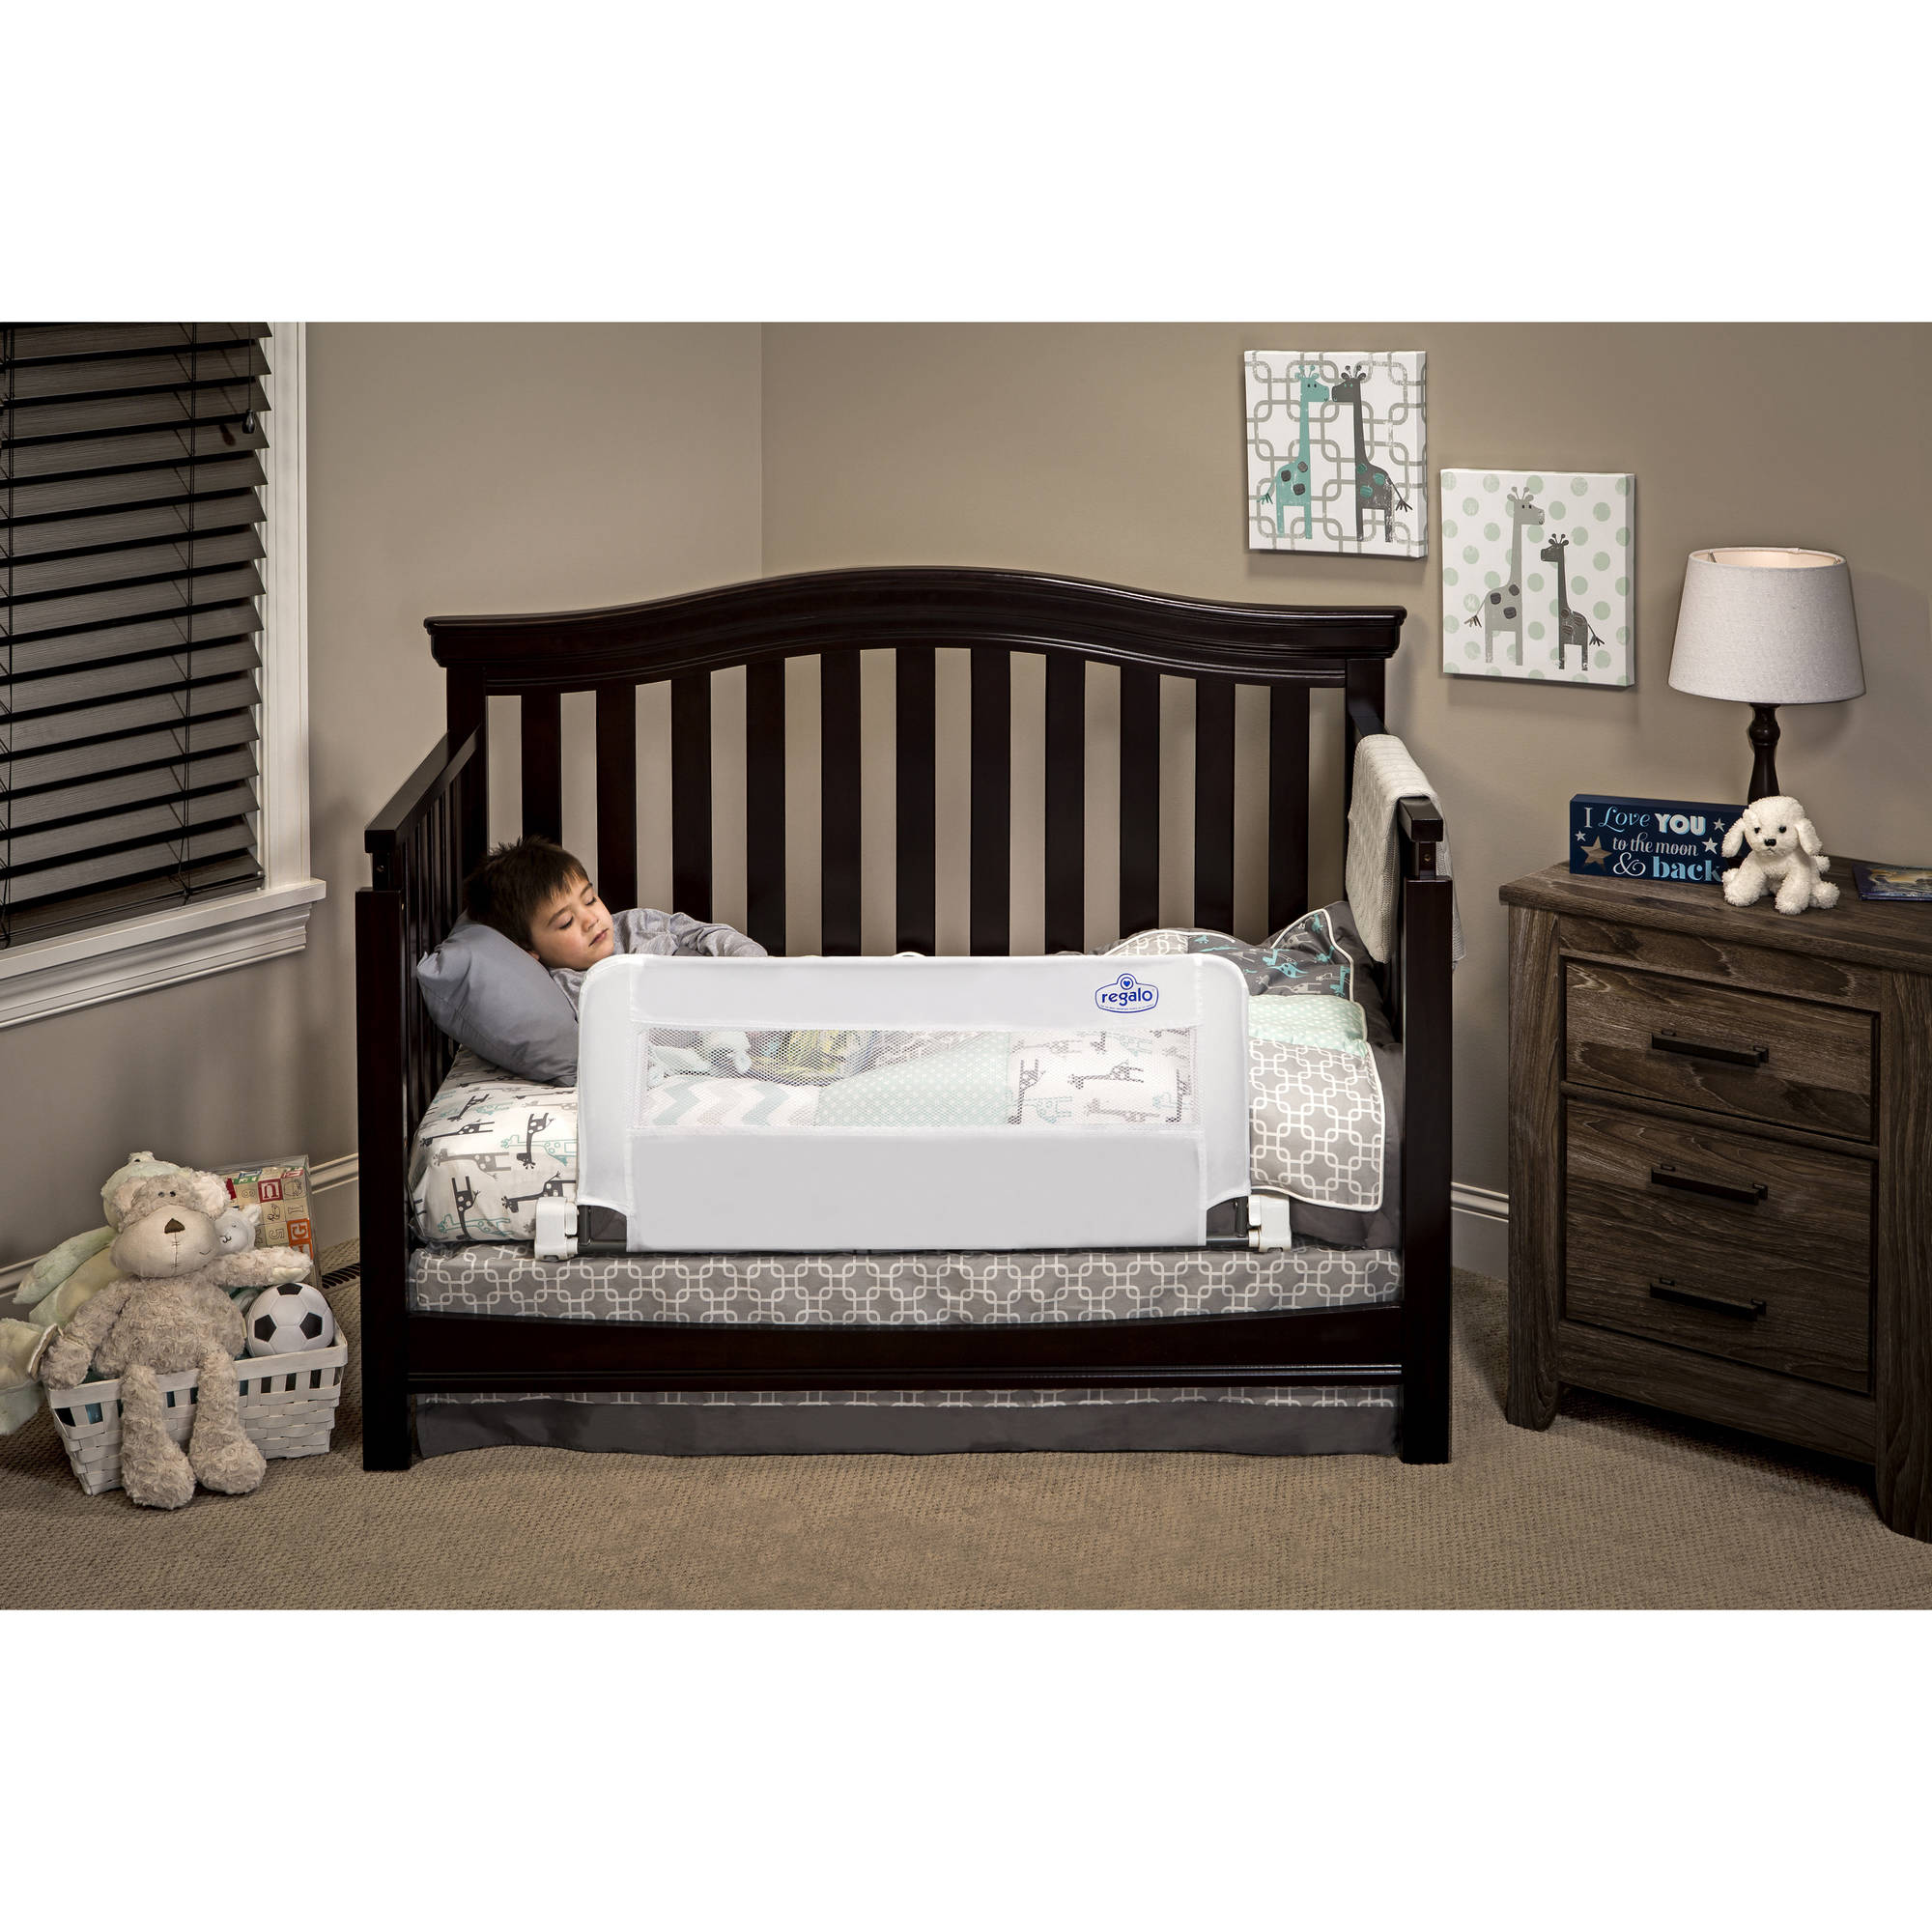 Baby bed gate walmart regalo swing down convertible crib rail 33 inch long and 16